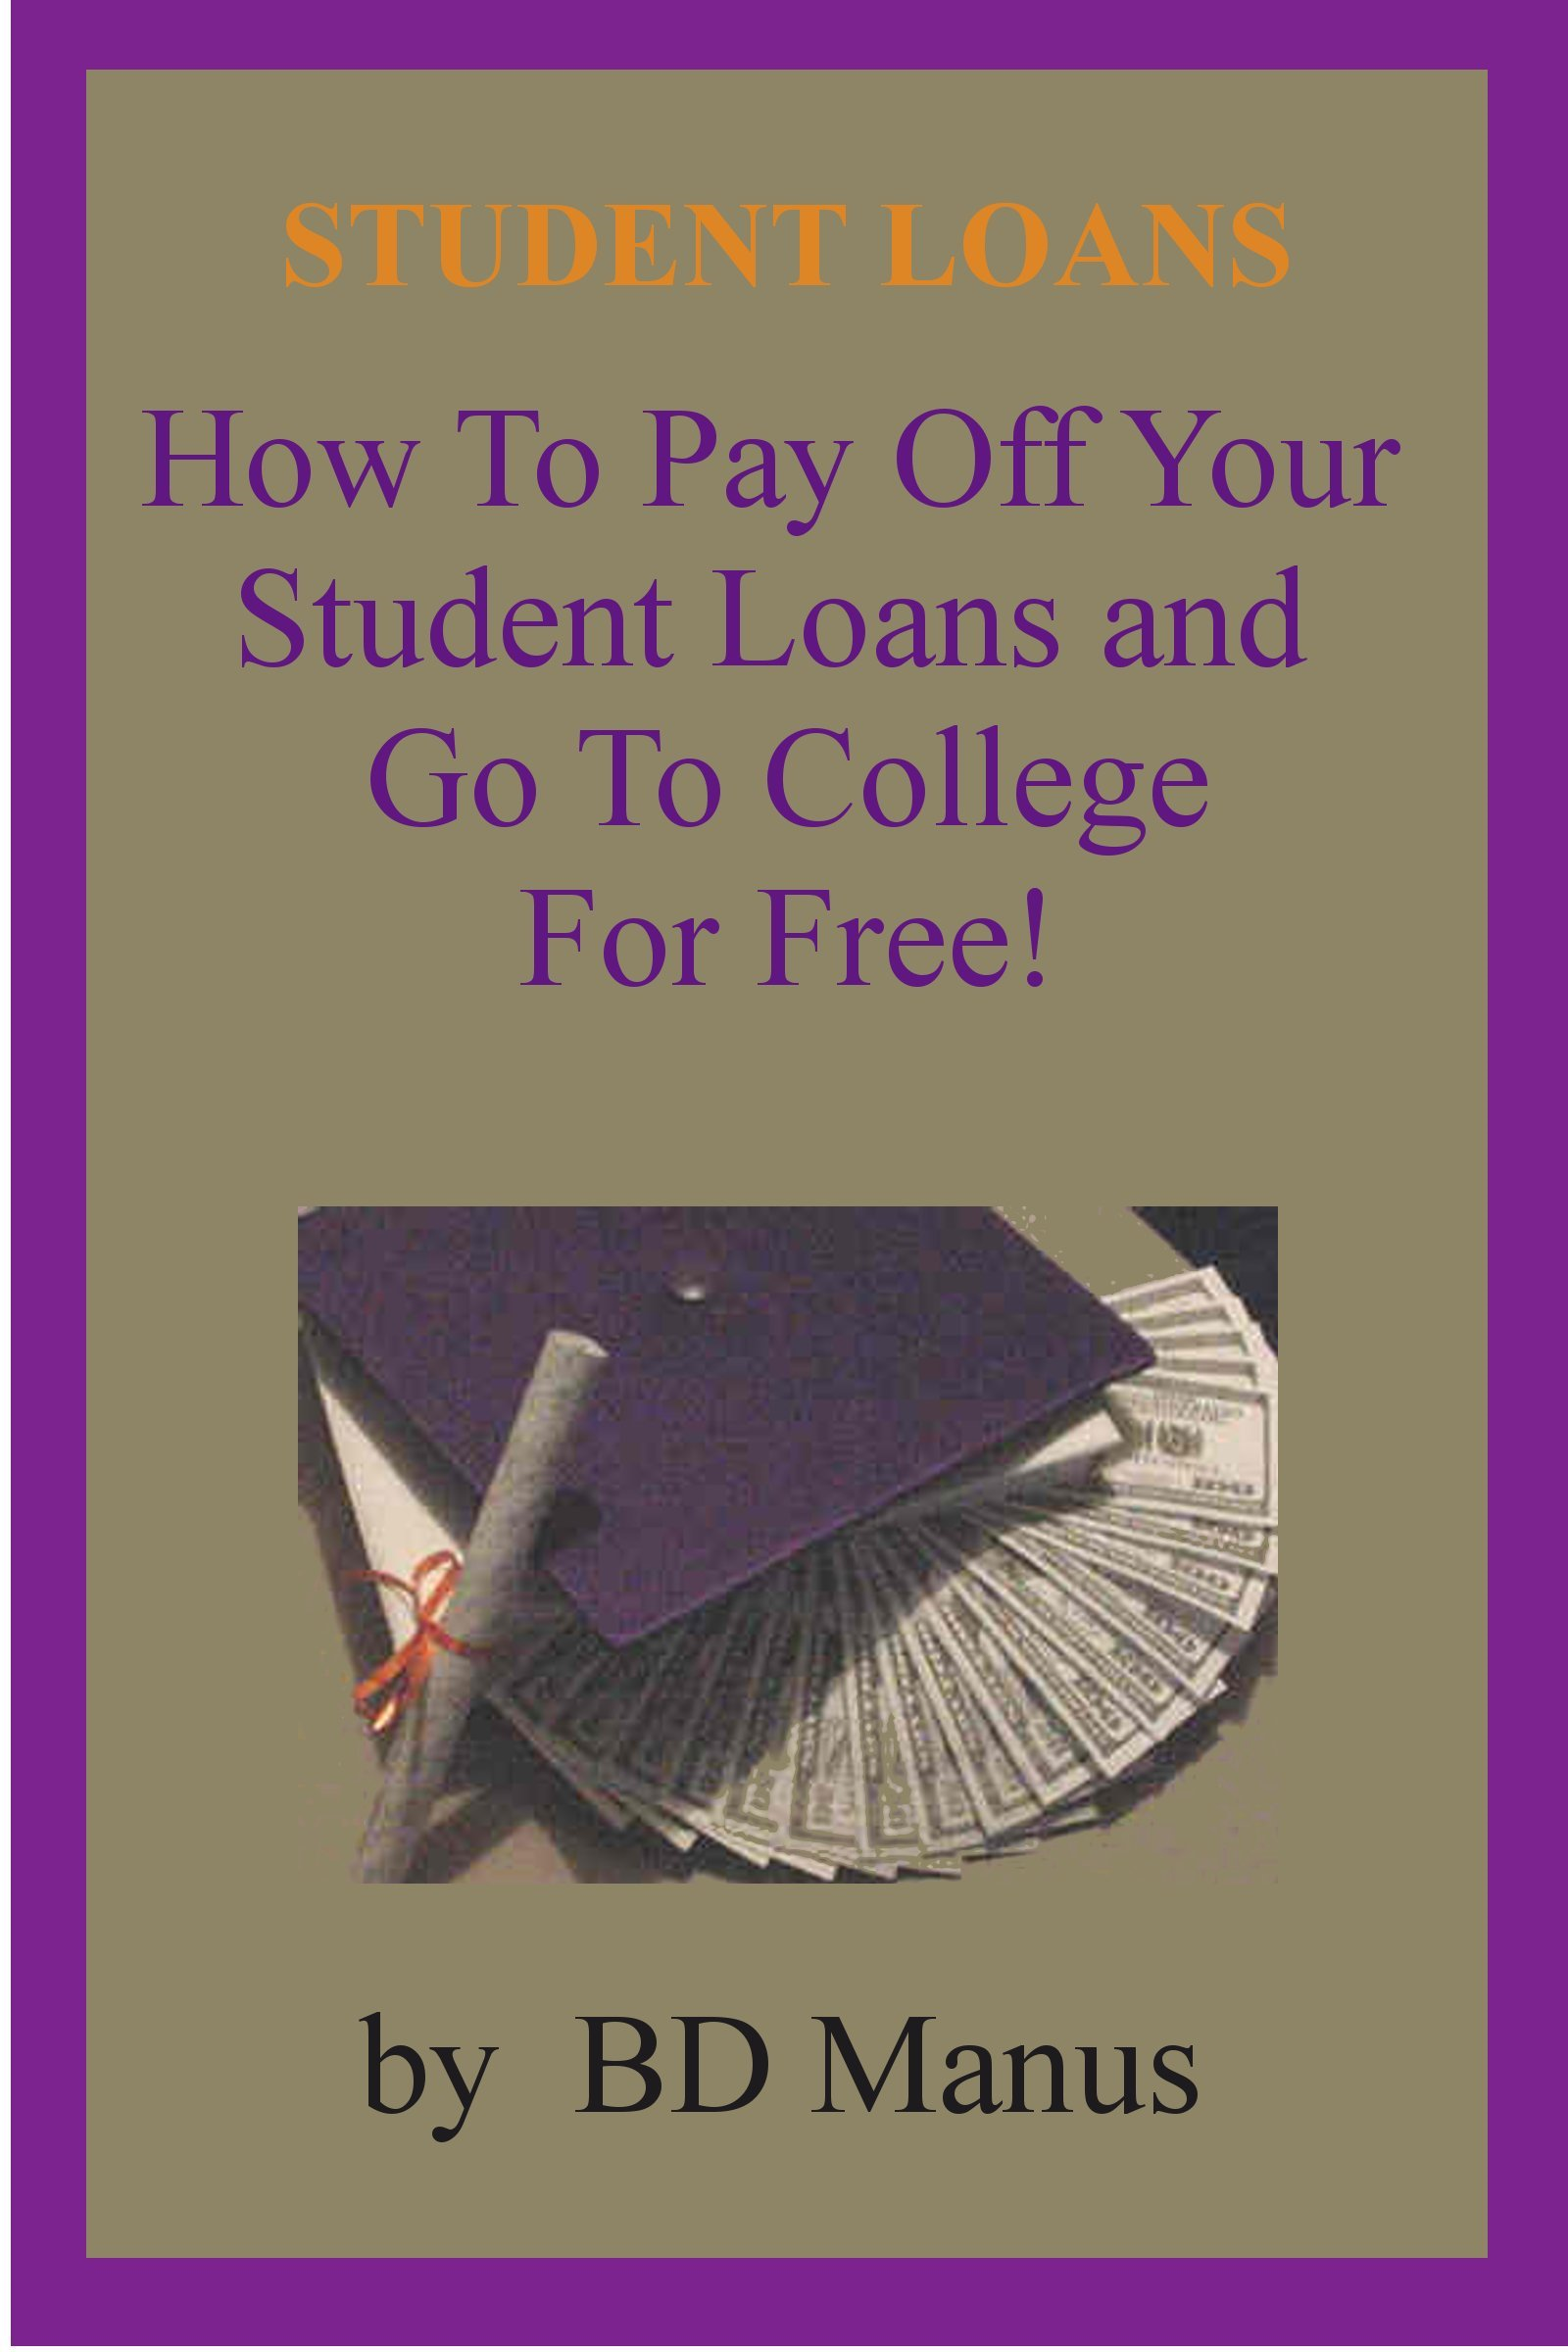 Student Loans: How to Pay off Your Student Loans and Go to College for Free